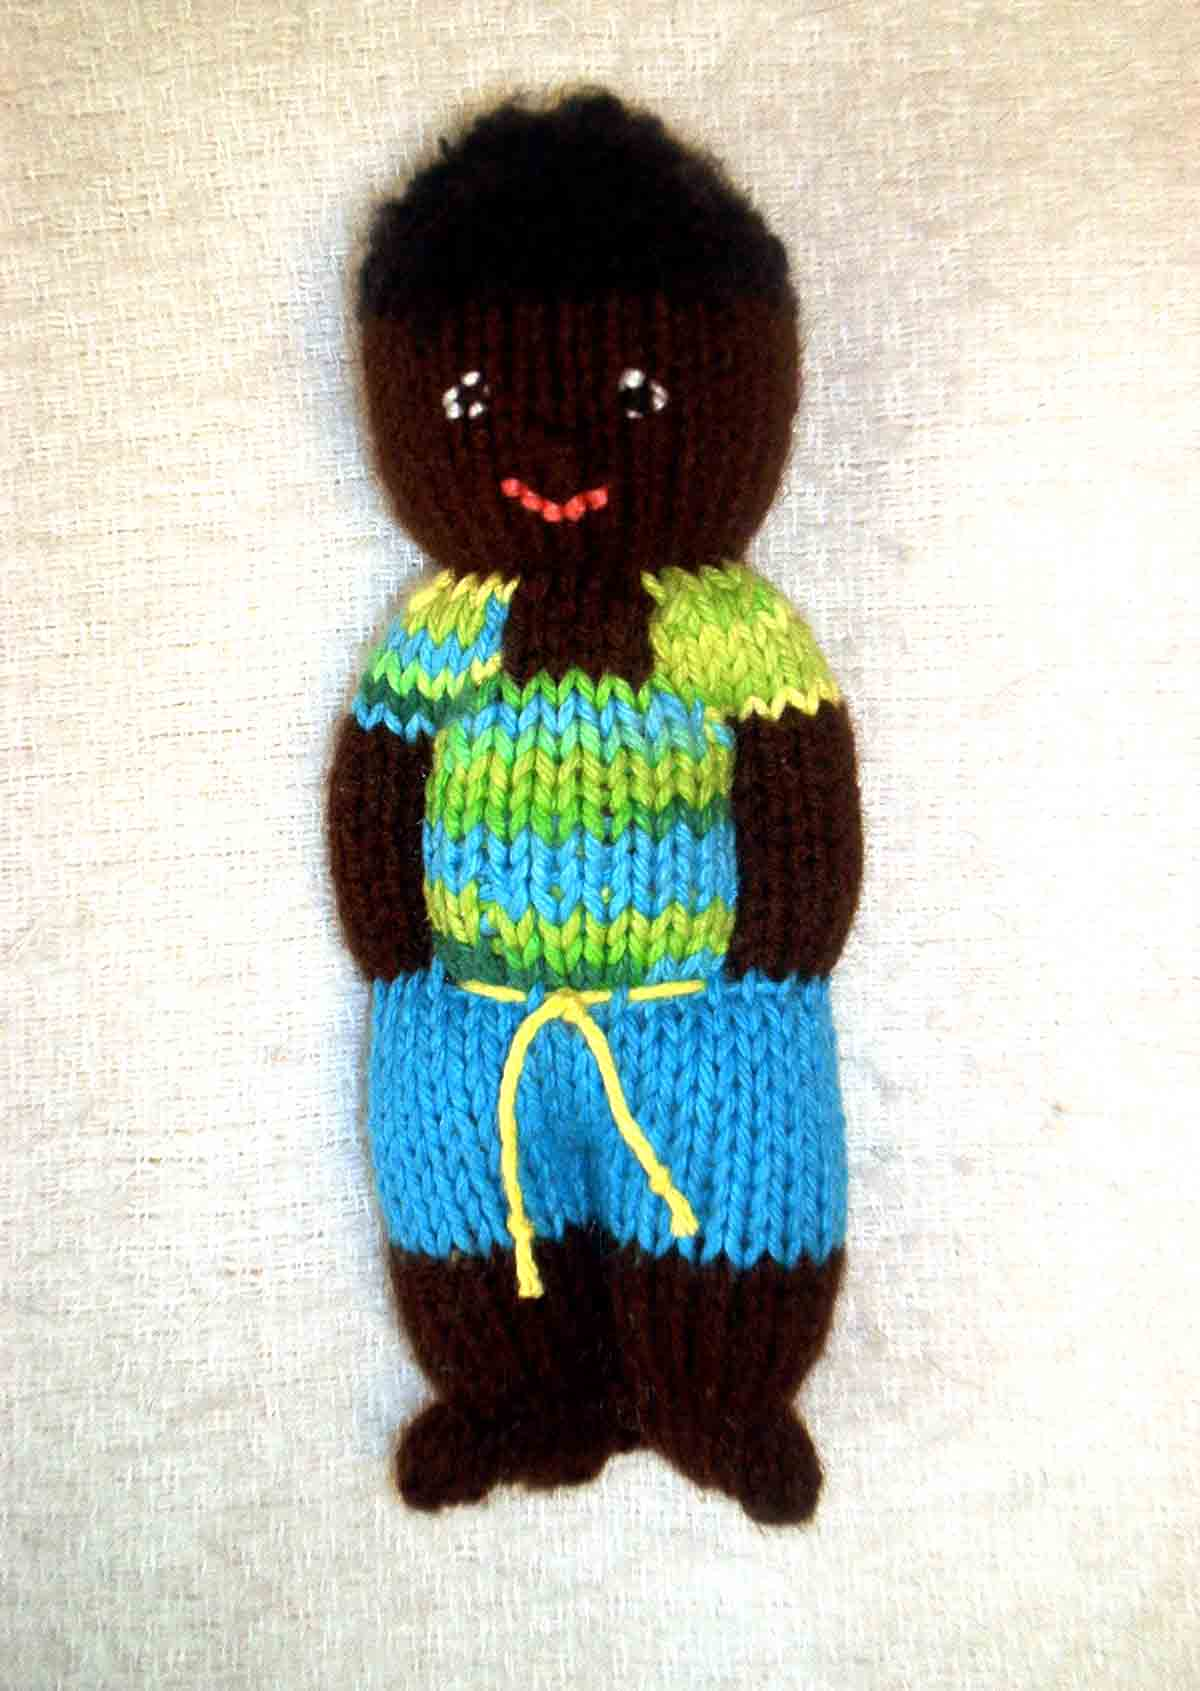 Knitting Patterns Charity : Charity Knitting-Comfort Dolls Random Bits of Projects